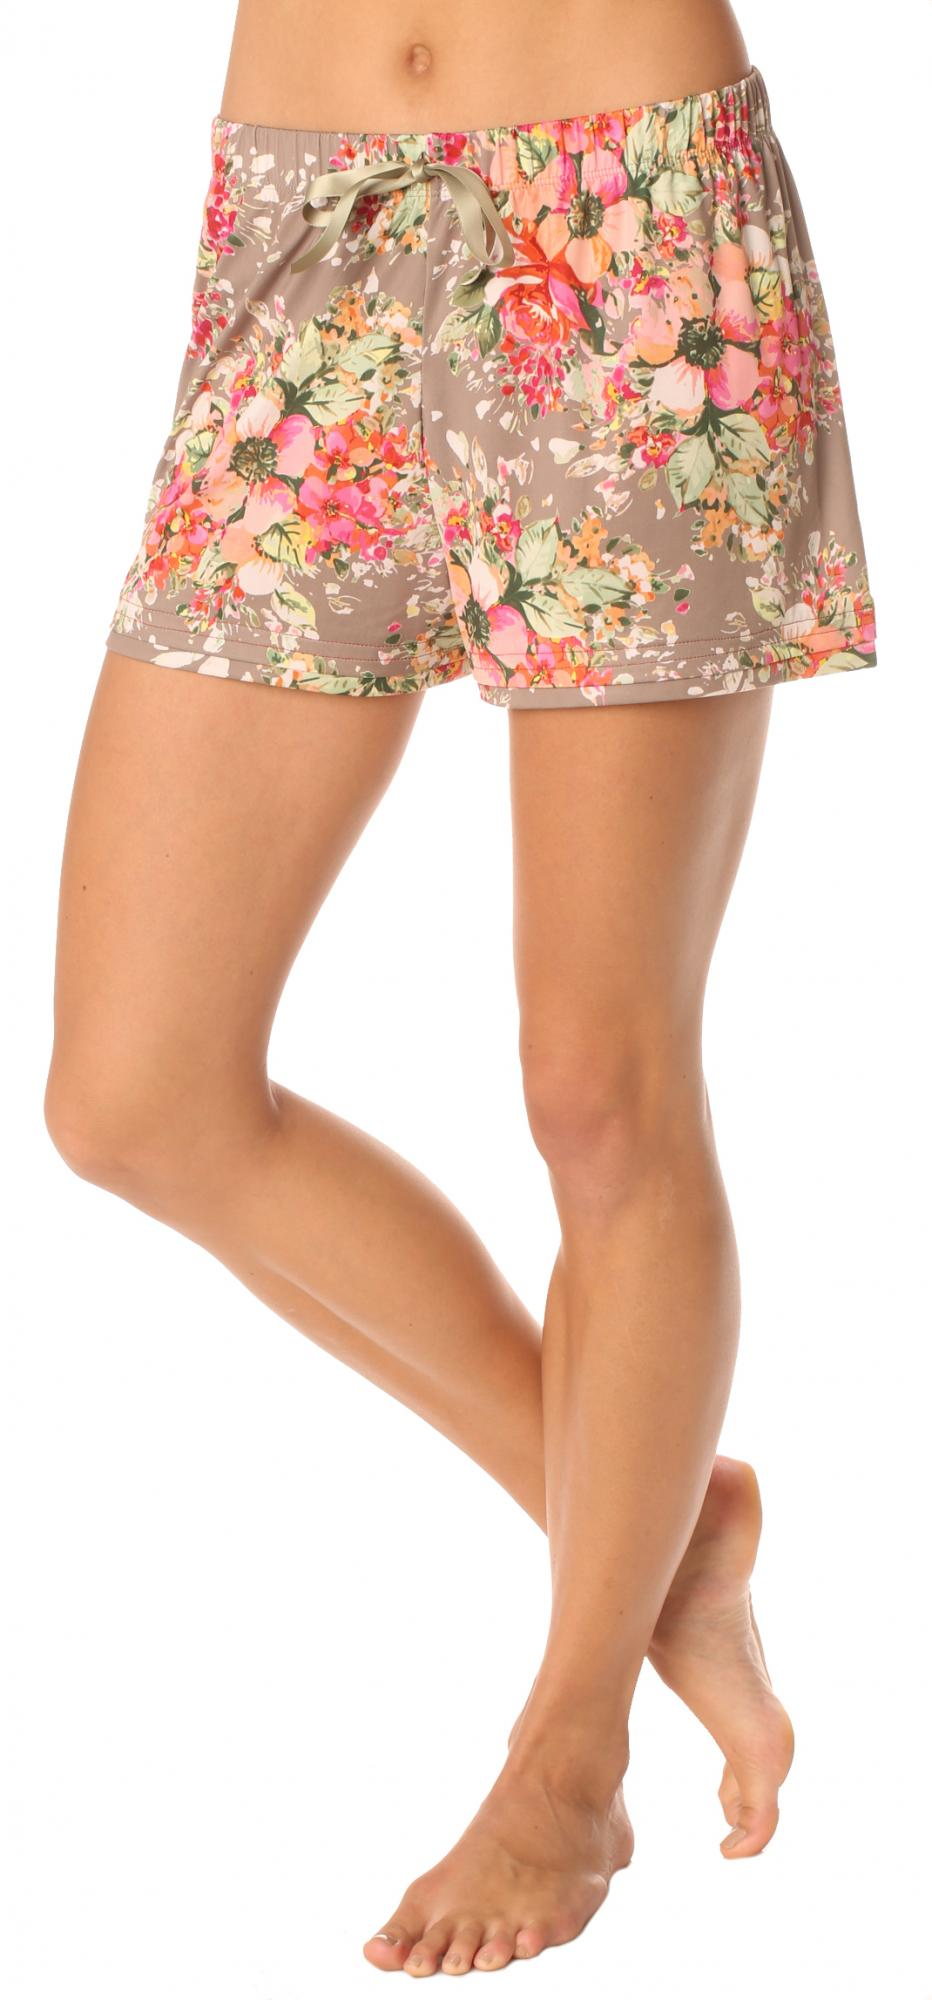 majamas-sunrise-nursing-boxer-set-oasis-shorts.jpg